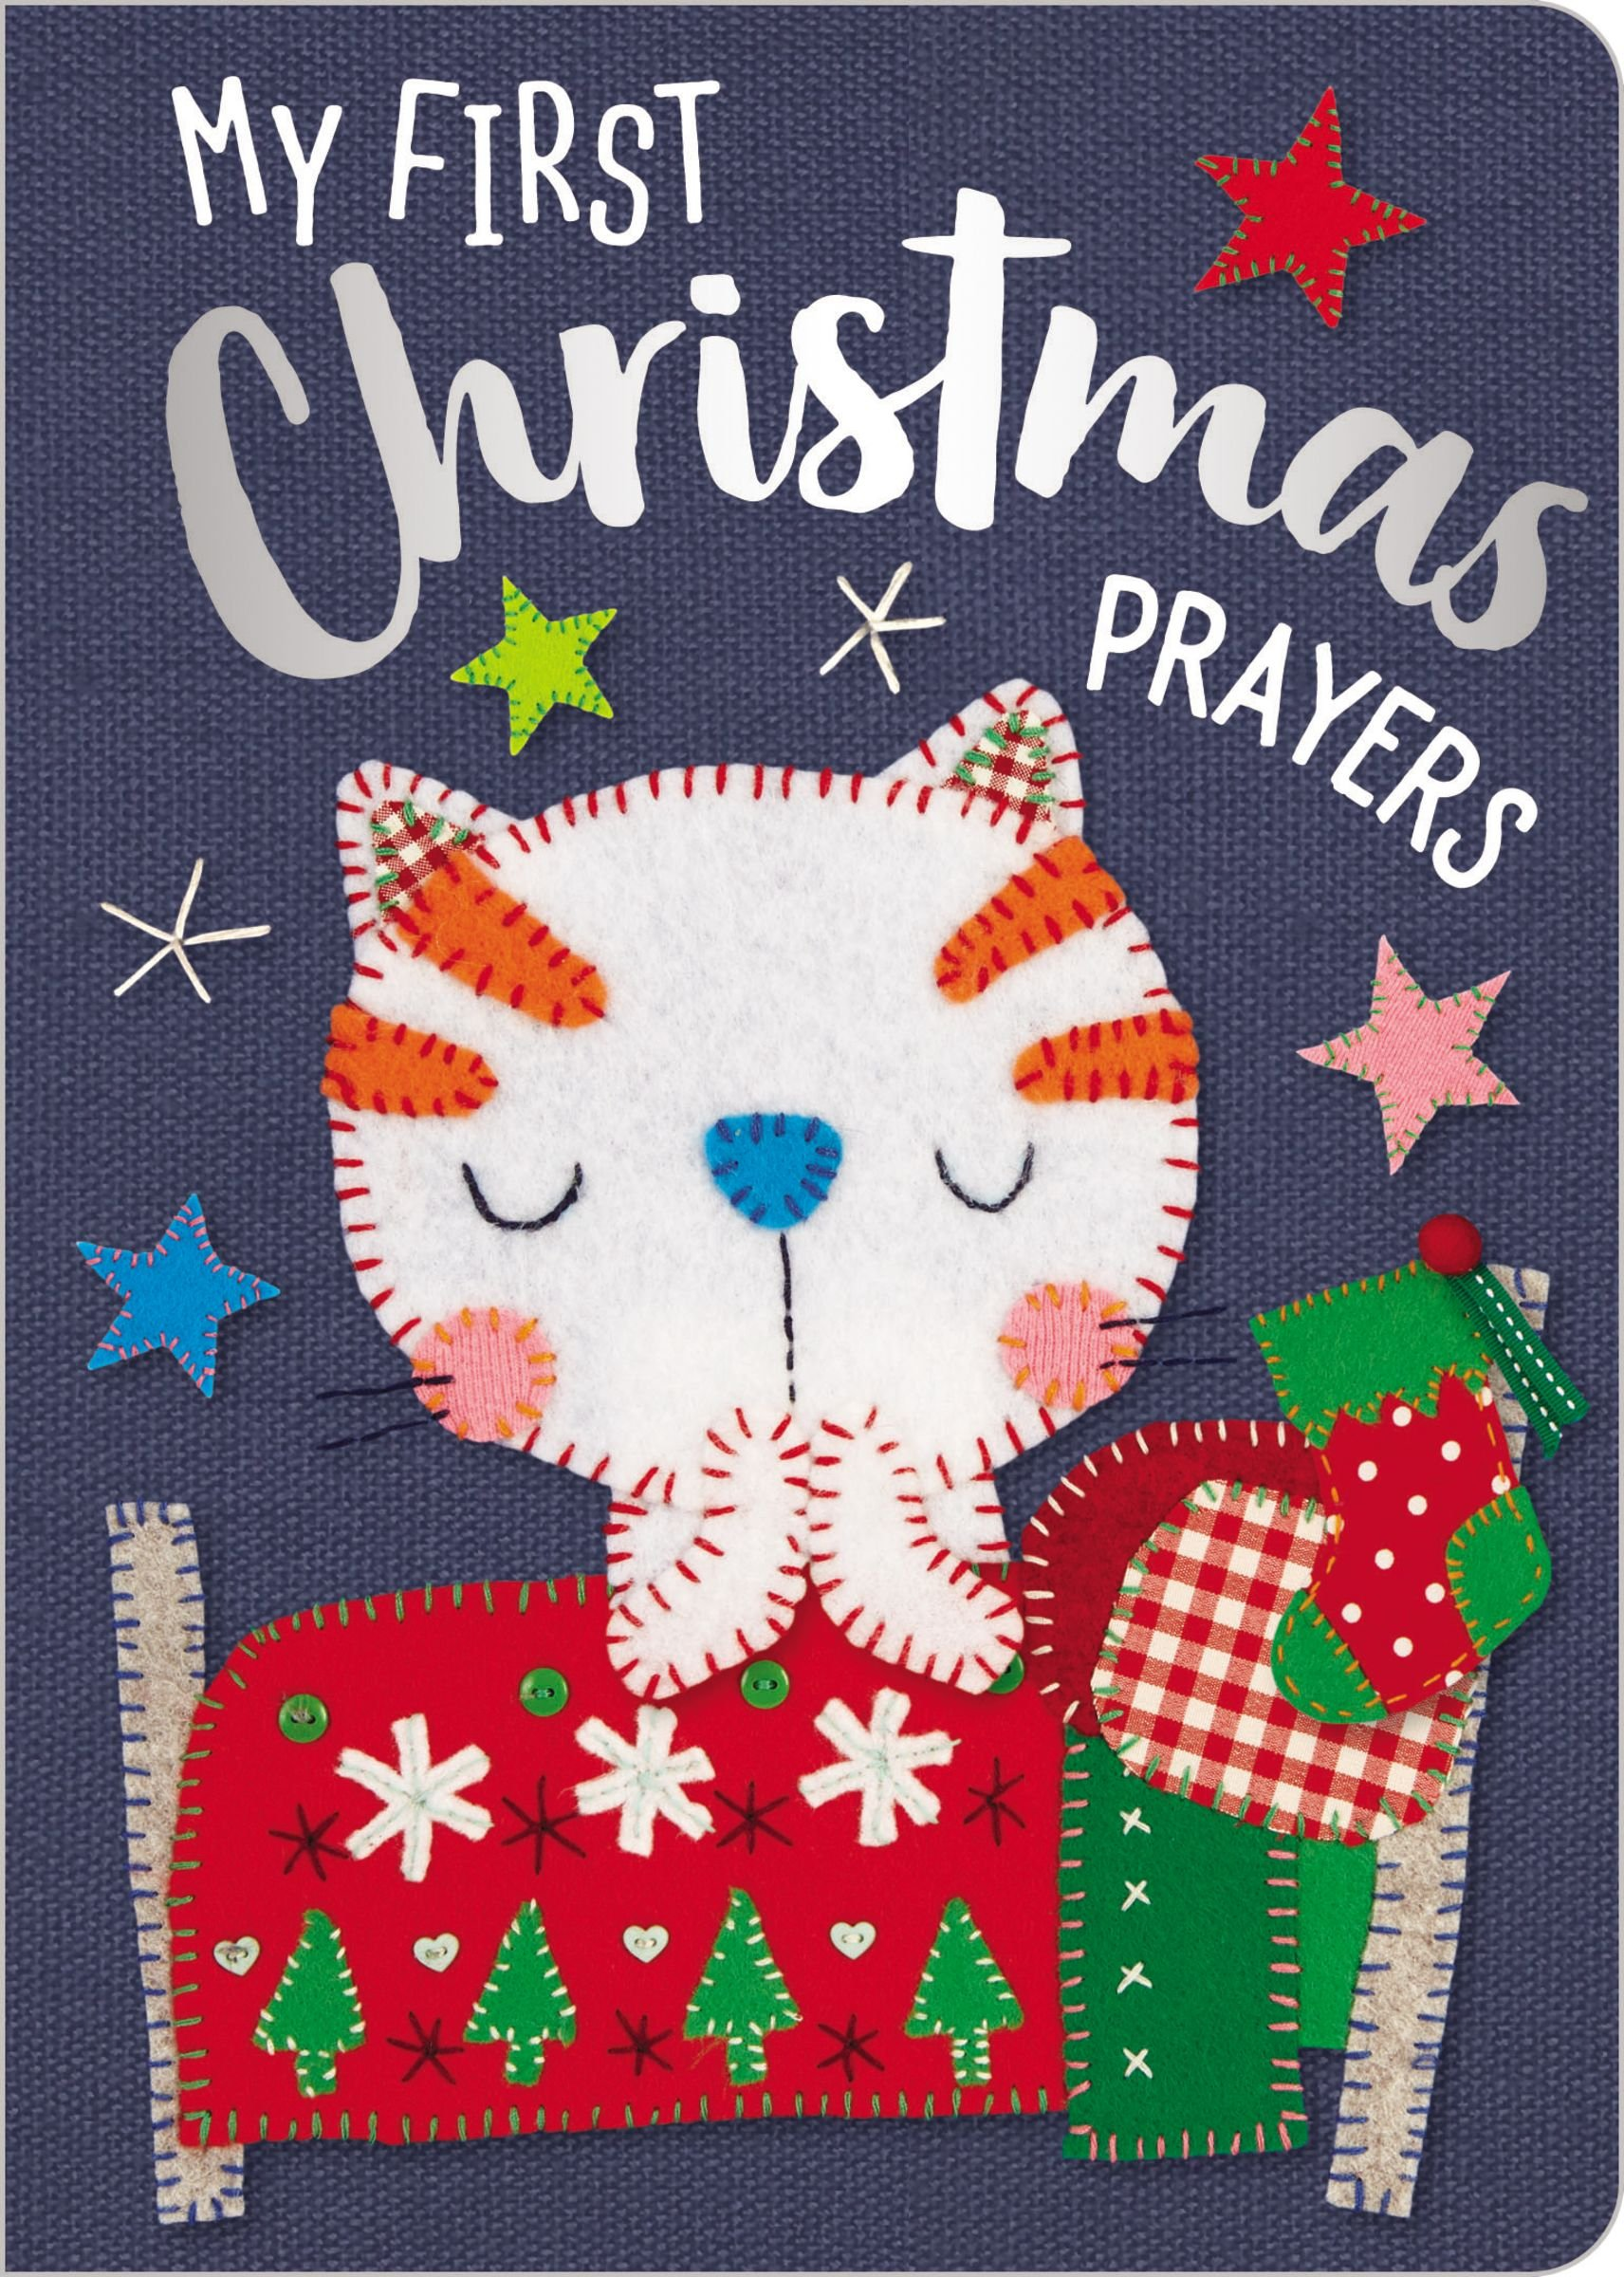 My First Christmas Prayers Board book – October 23, 2018